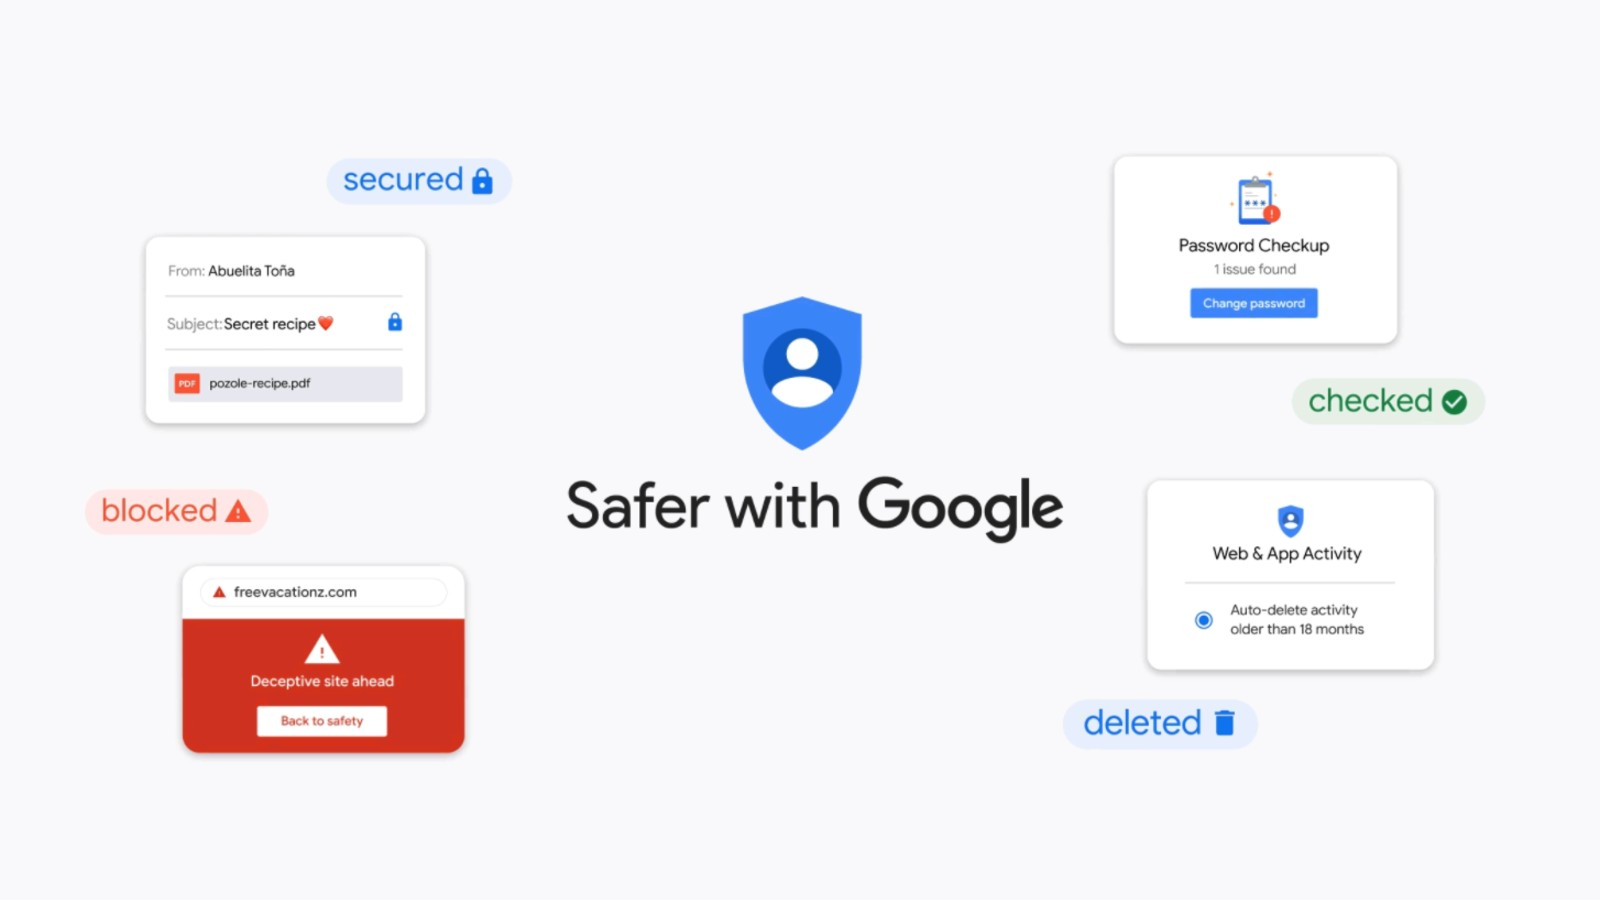 New advanced privacy and security controls arrive for your Google account